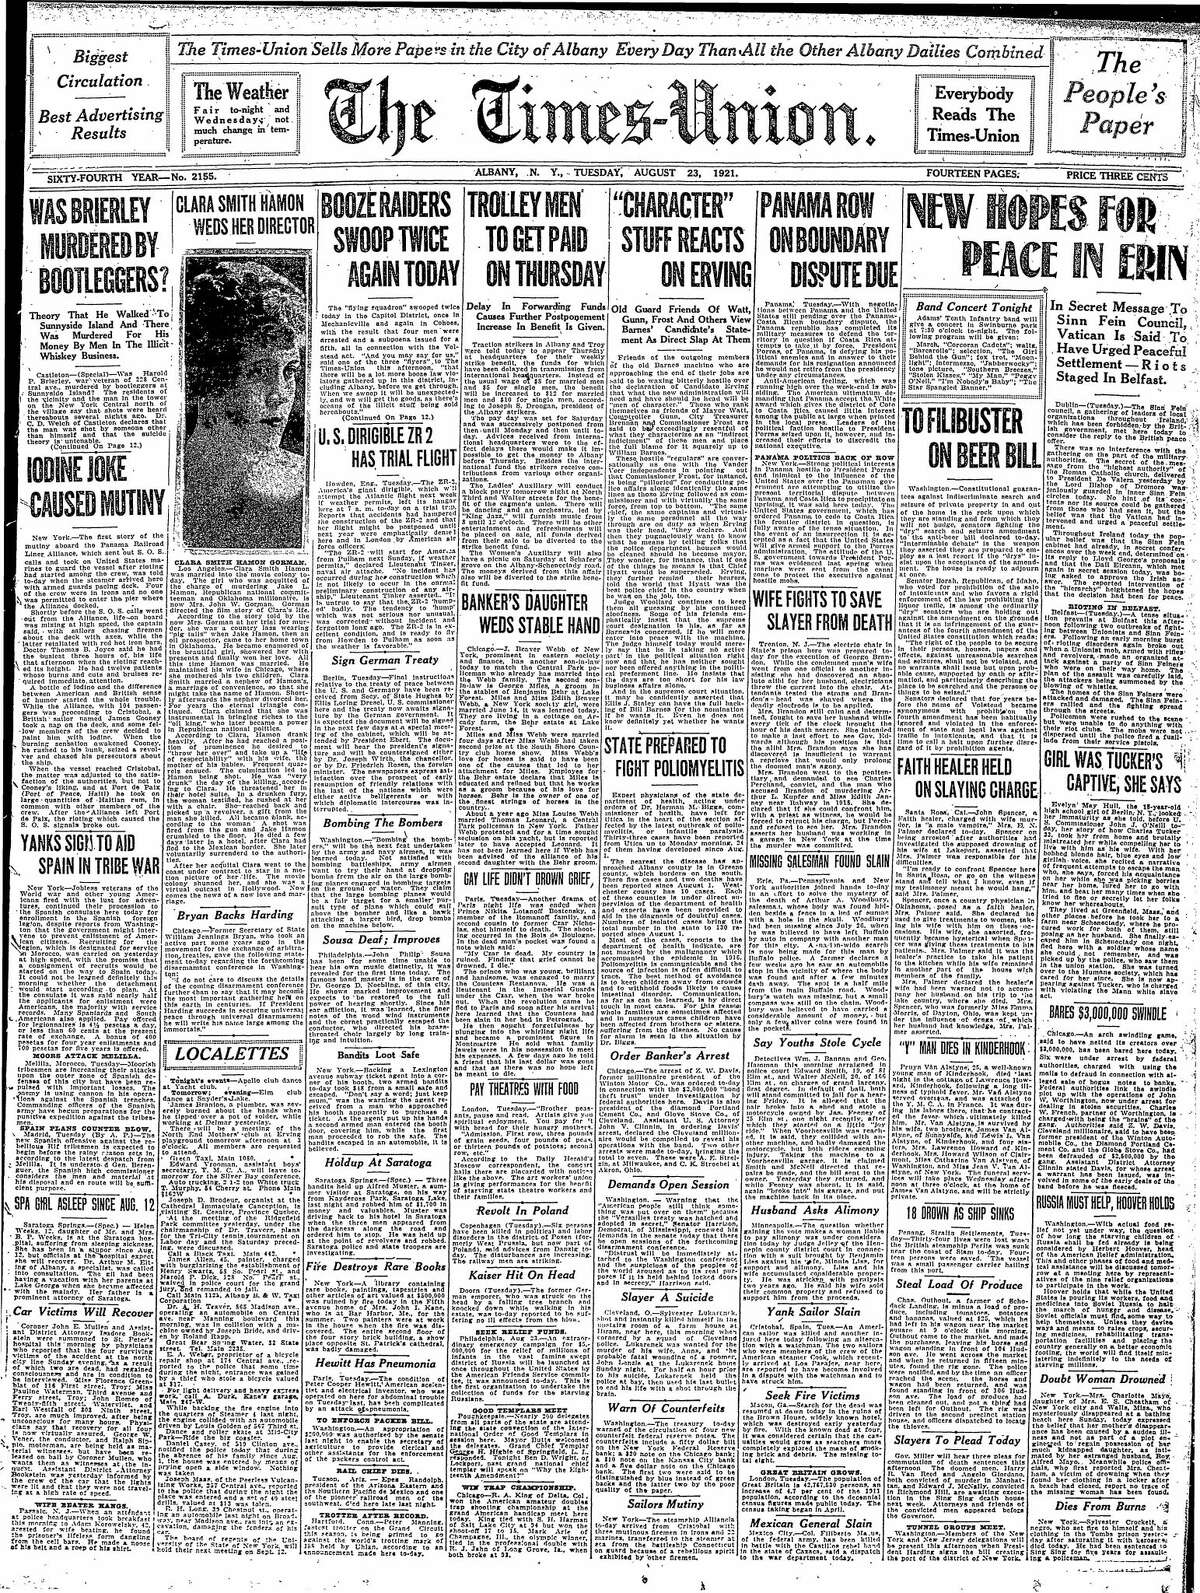 Front page of the Times Union, Aug. 23, 1921.